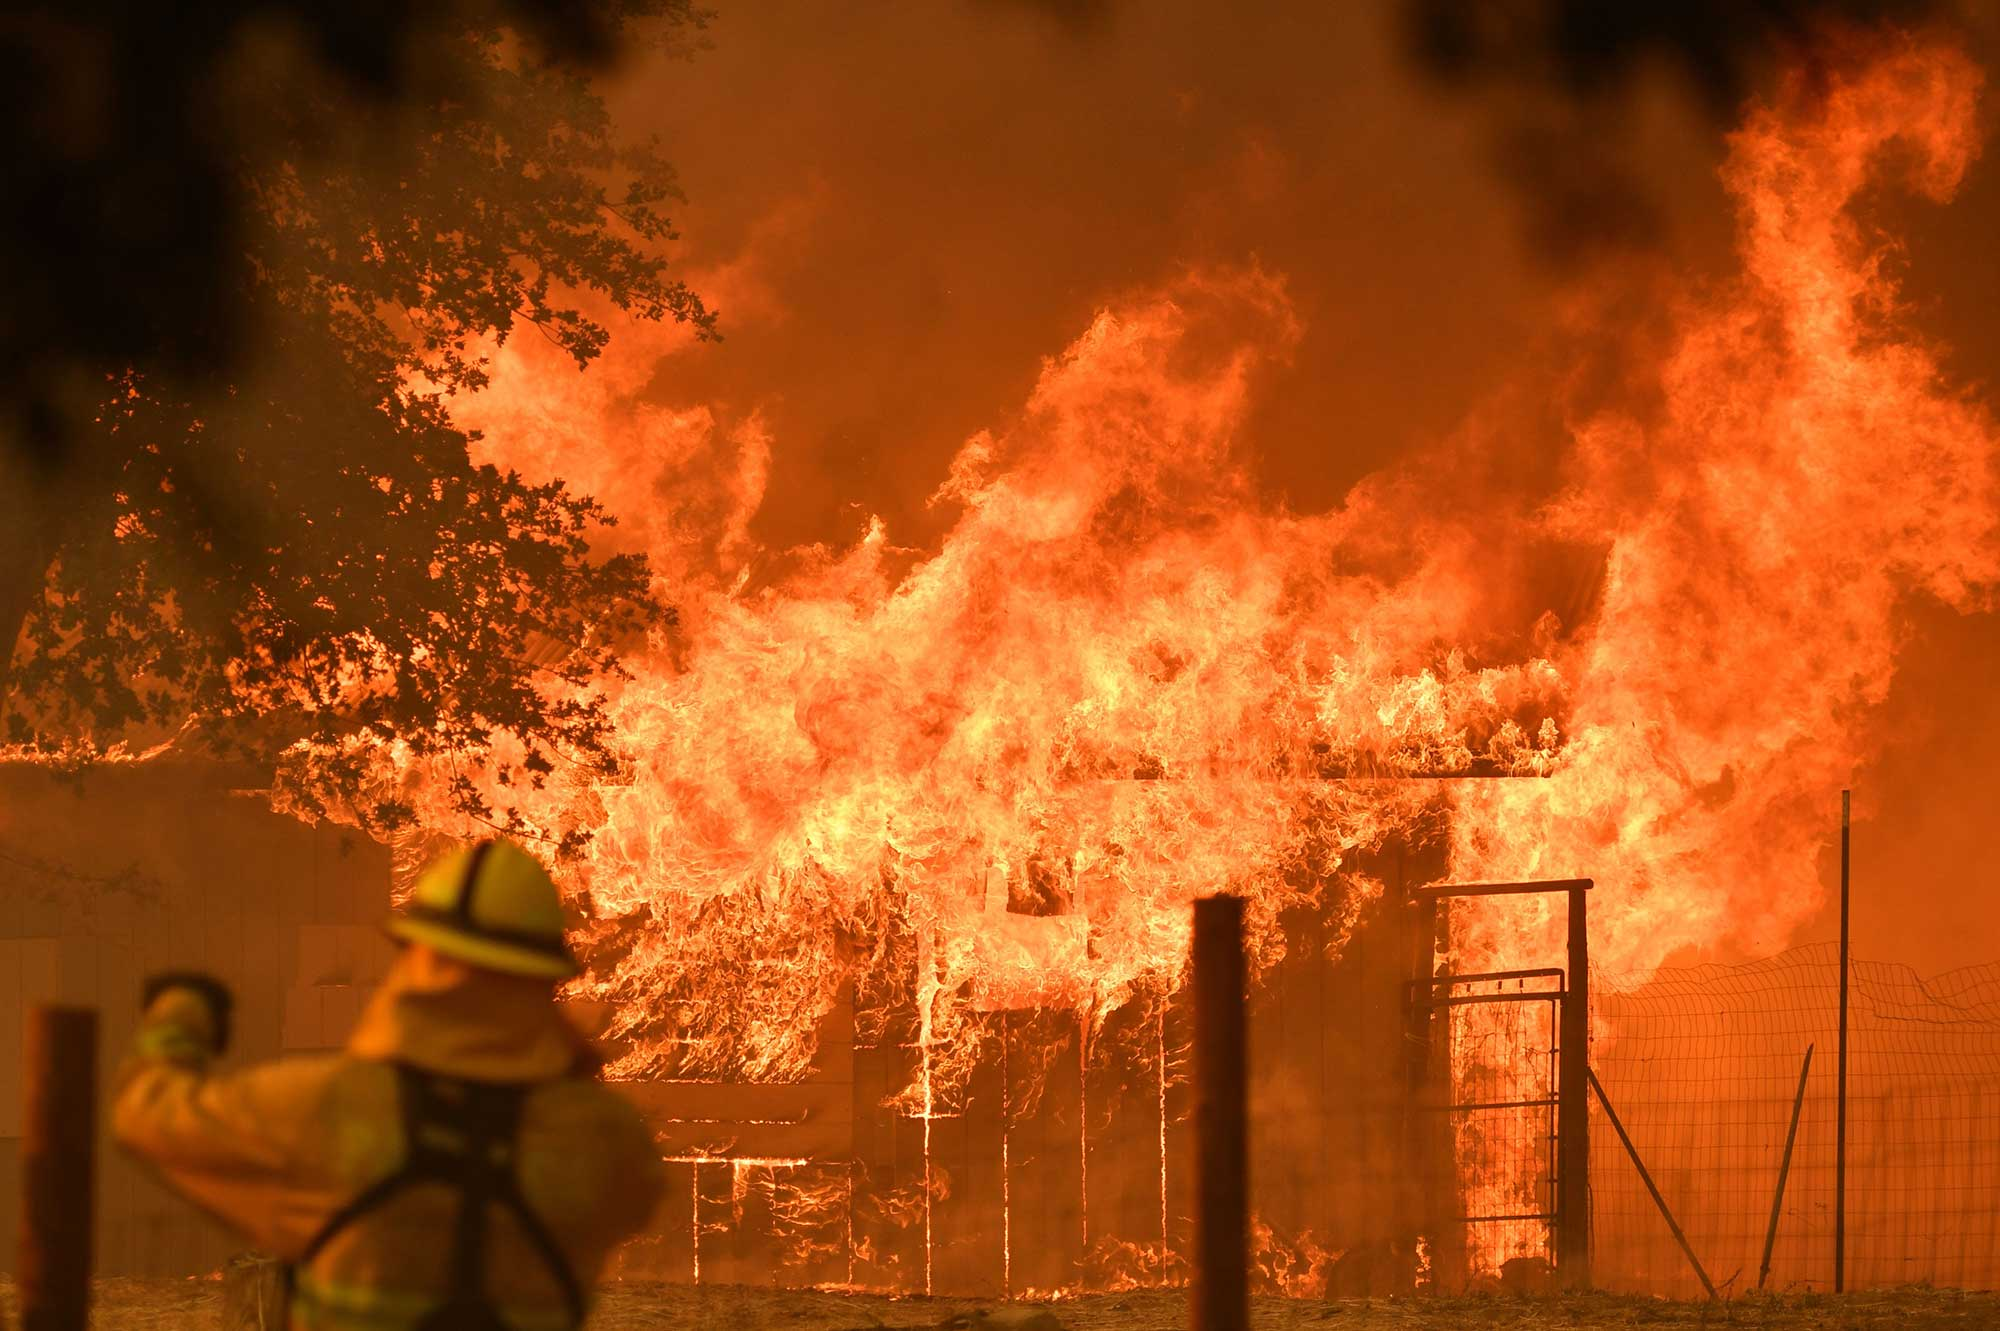 "<div class=""meta image-caption""><div class=""origin-logo origin-image none""><span>none</span></div><span class=""caption-text"">A firefighter watches as a building burns during the Mendocino Complex fire in Lakeport, California, on July 30, 2018. (JOSH EDELSON/AFP/Getty Images)</span></div>"